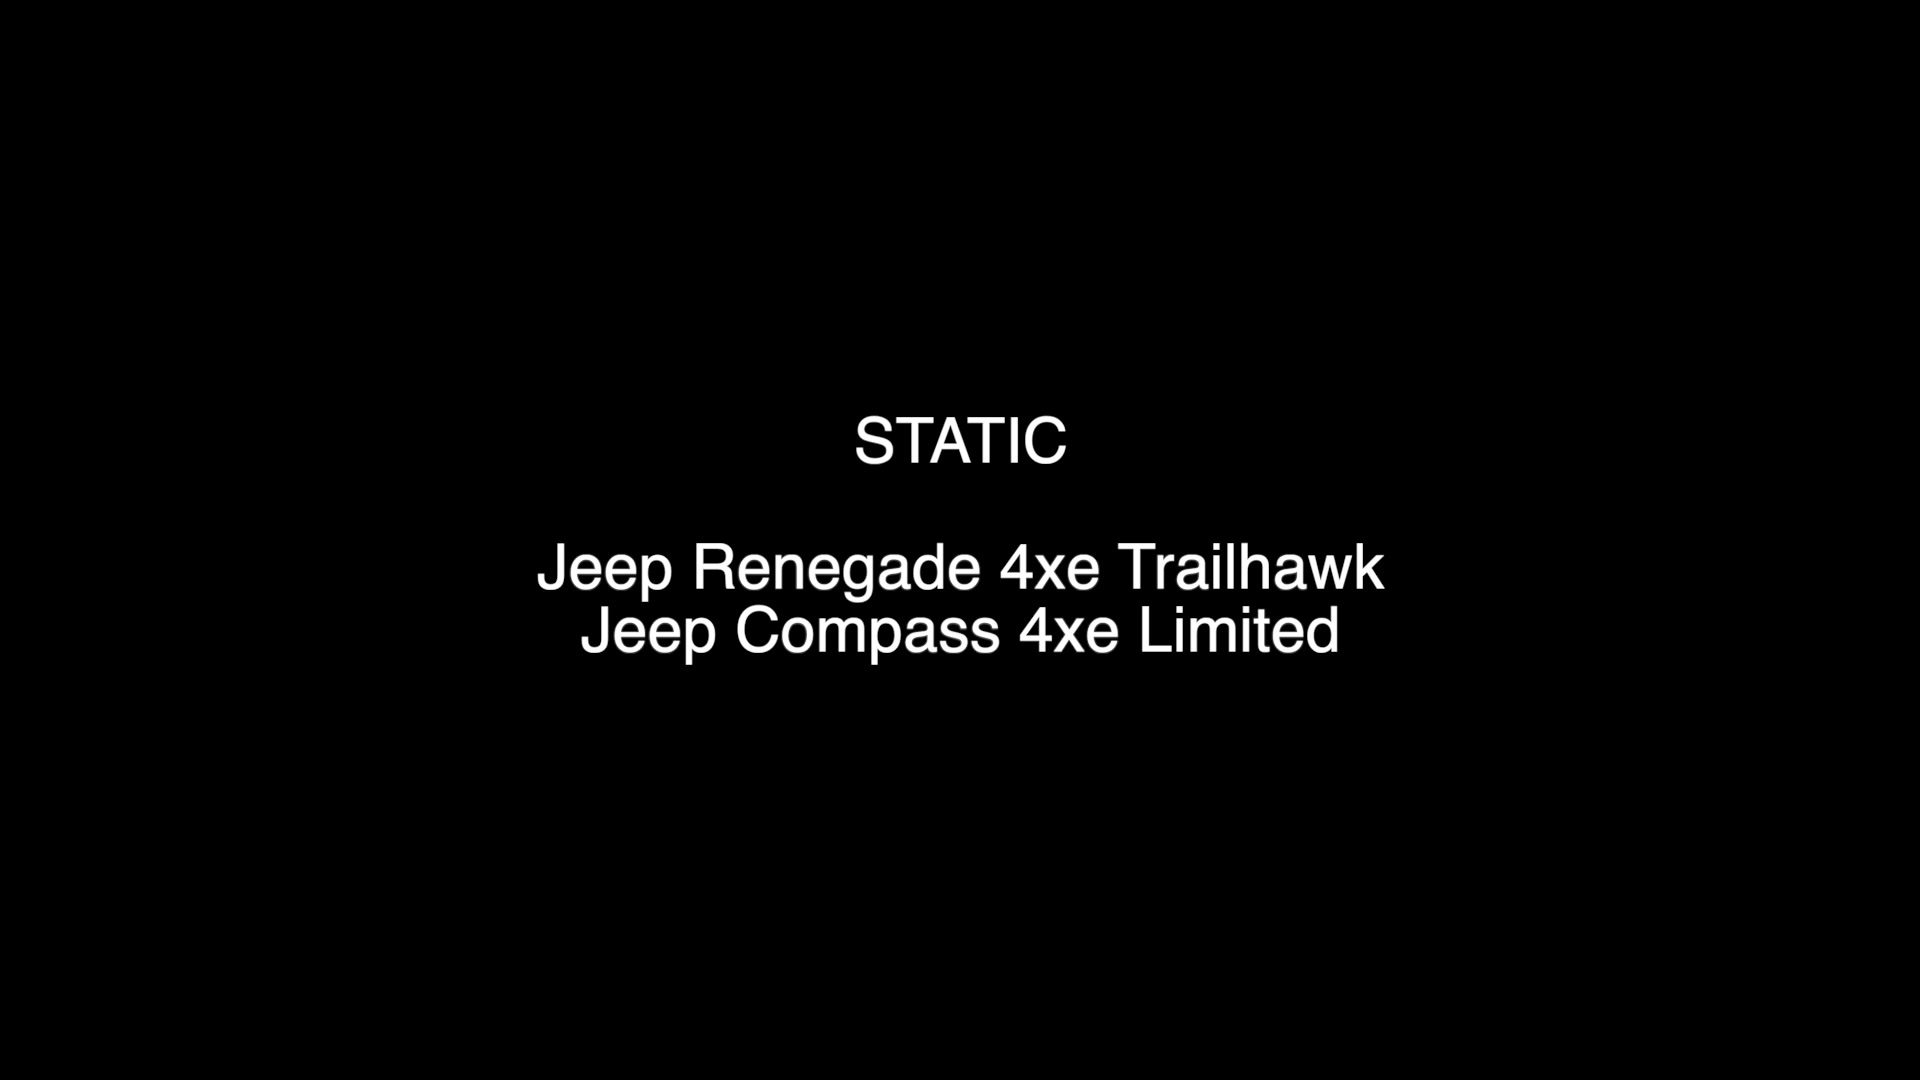 Renegade 4xe and Compass 4xe - Footage